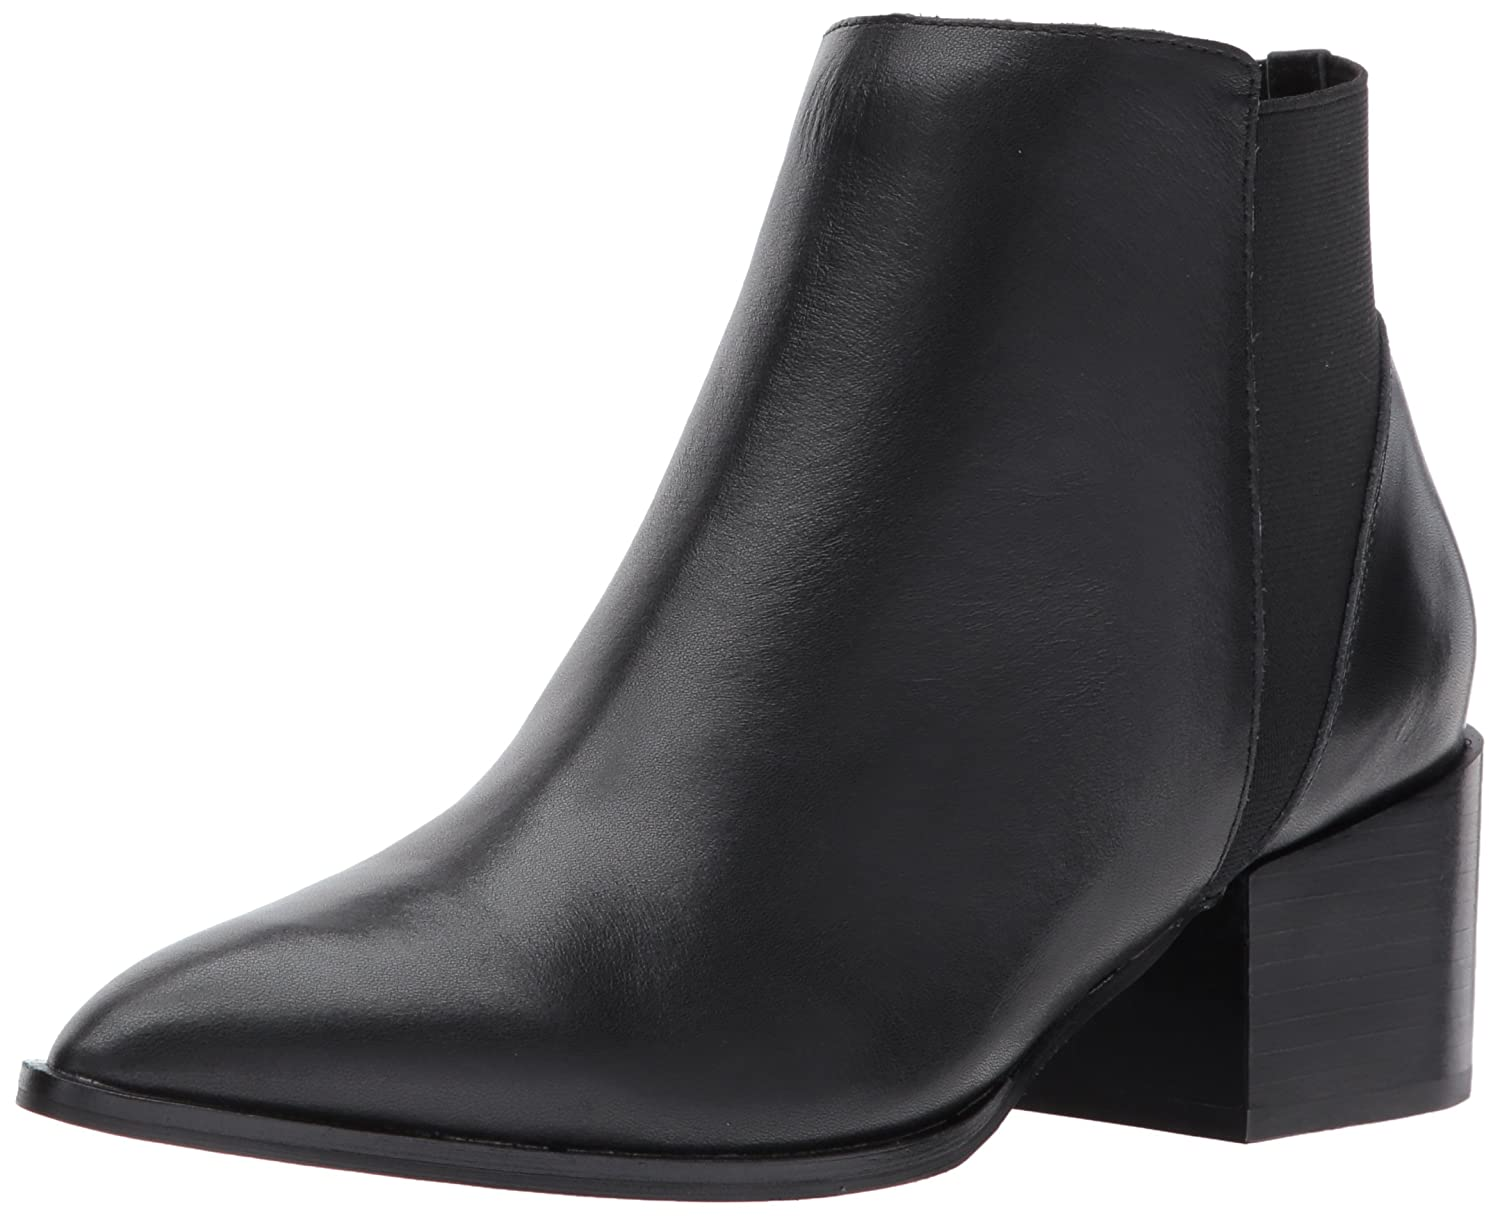 Chinese Laundry Women's Finn Ankle Bootie B0713ZHBGY 6 B(M) US|Black Leather